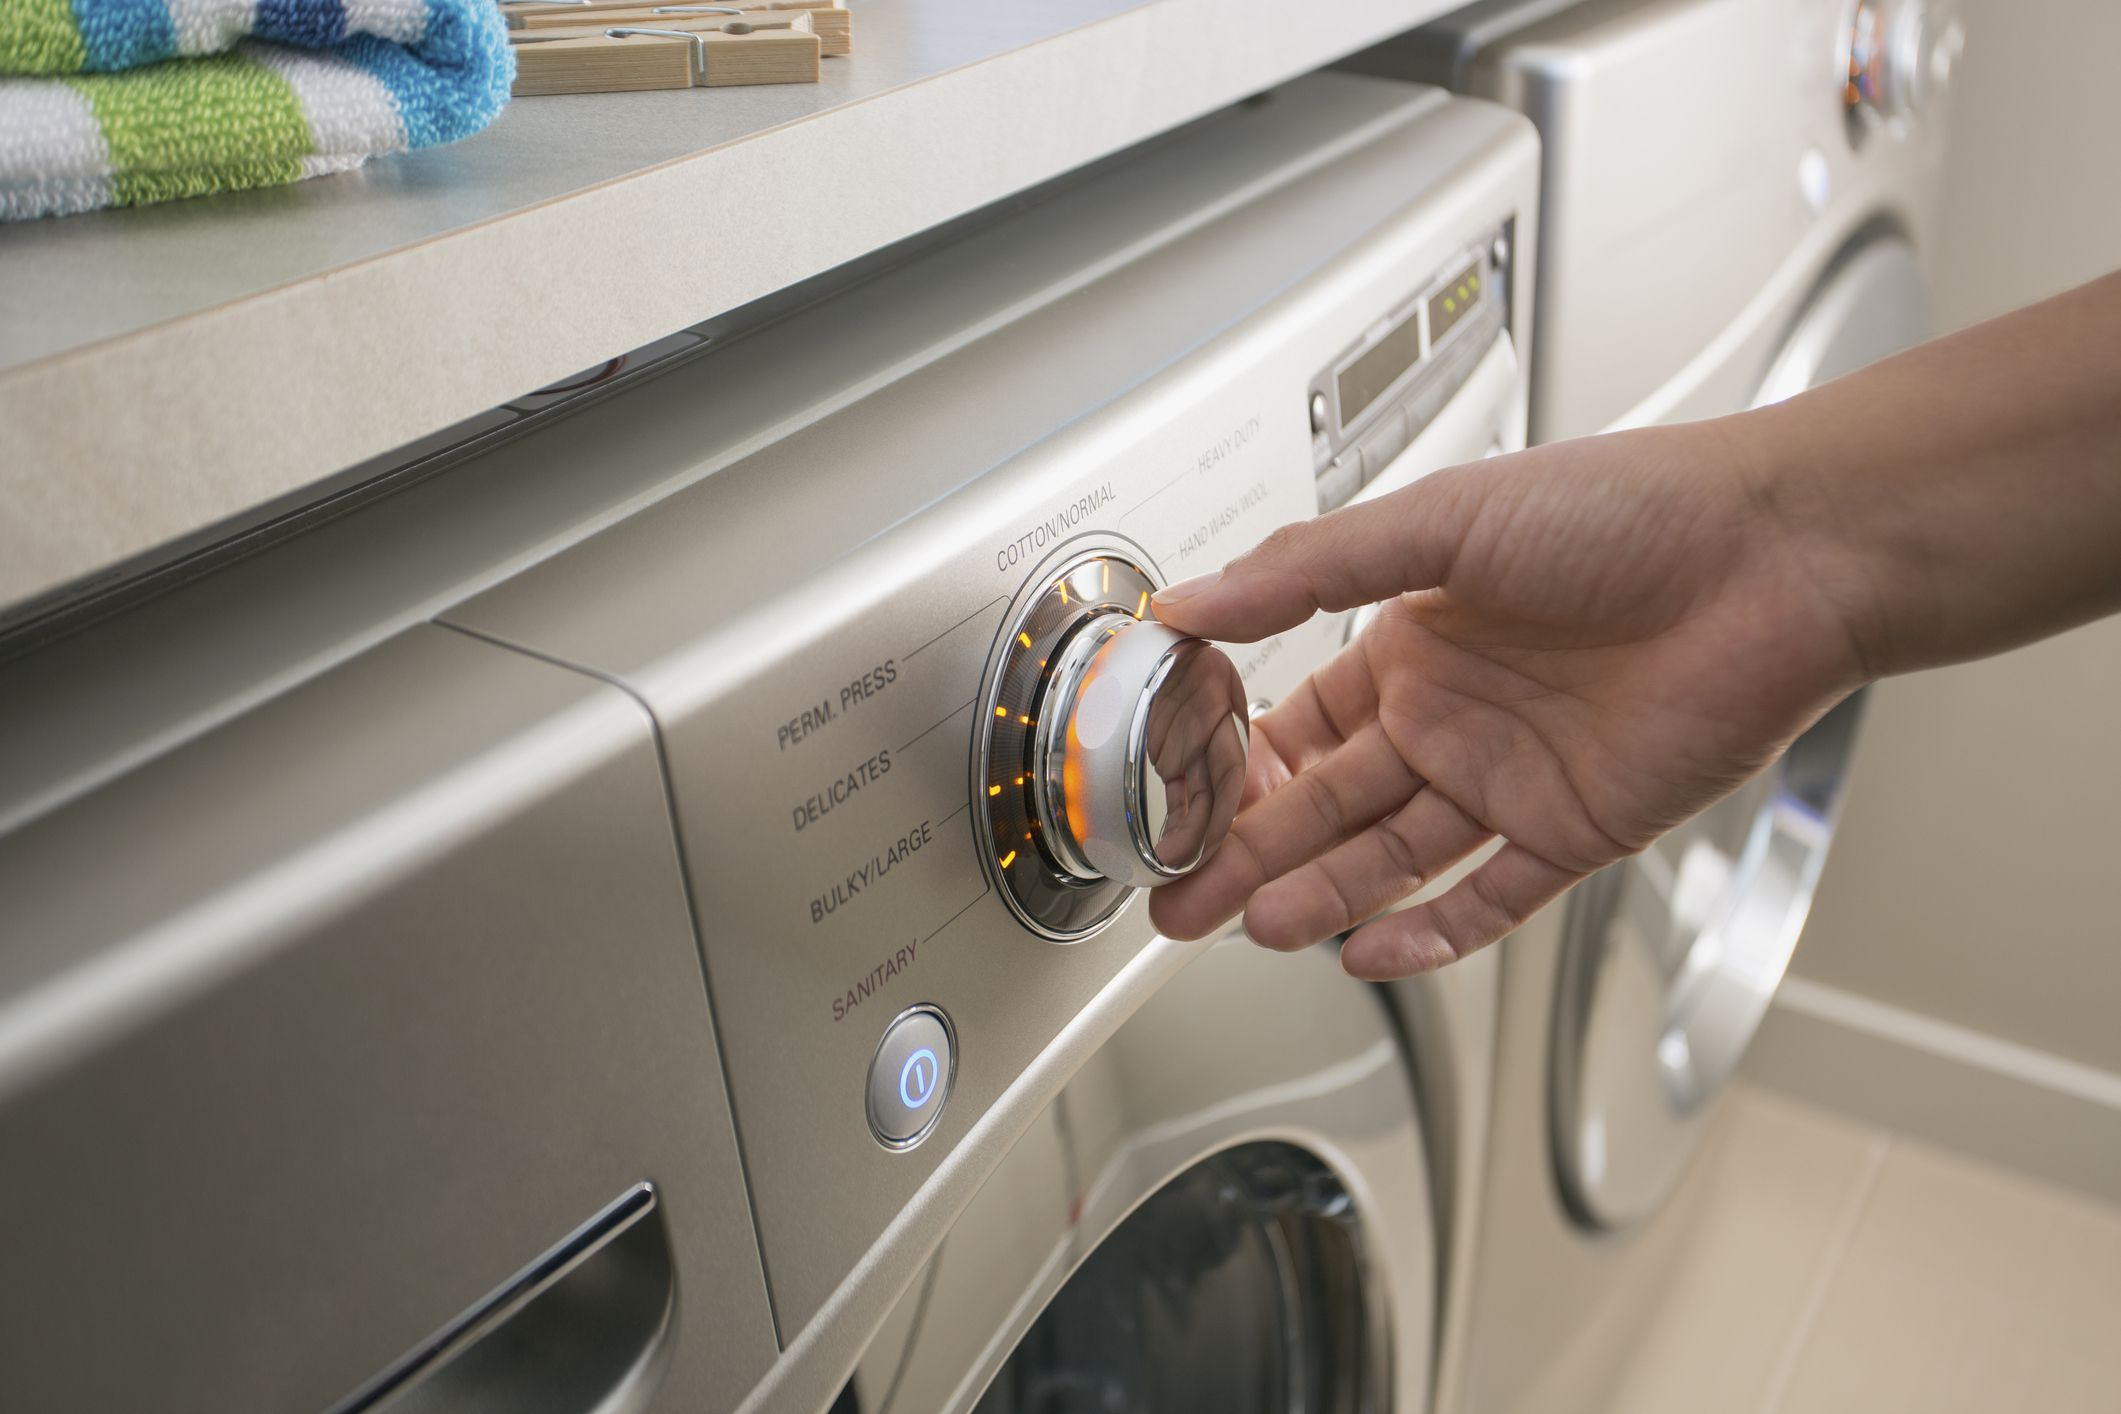 Hot, Warm, or Cold Water for Laundry?